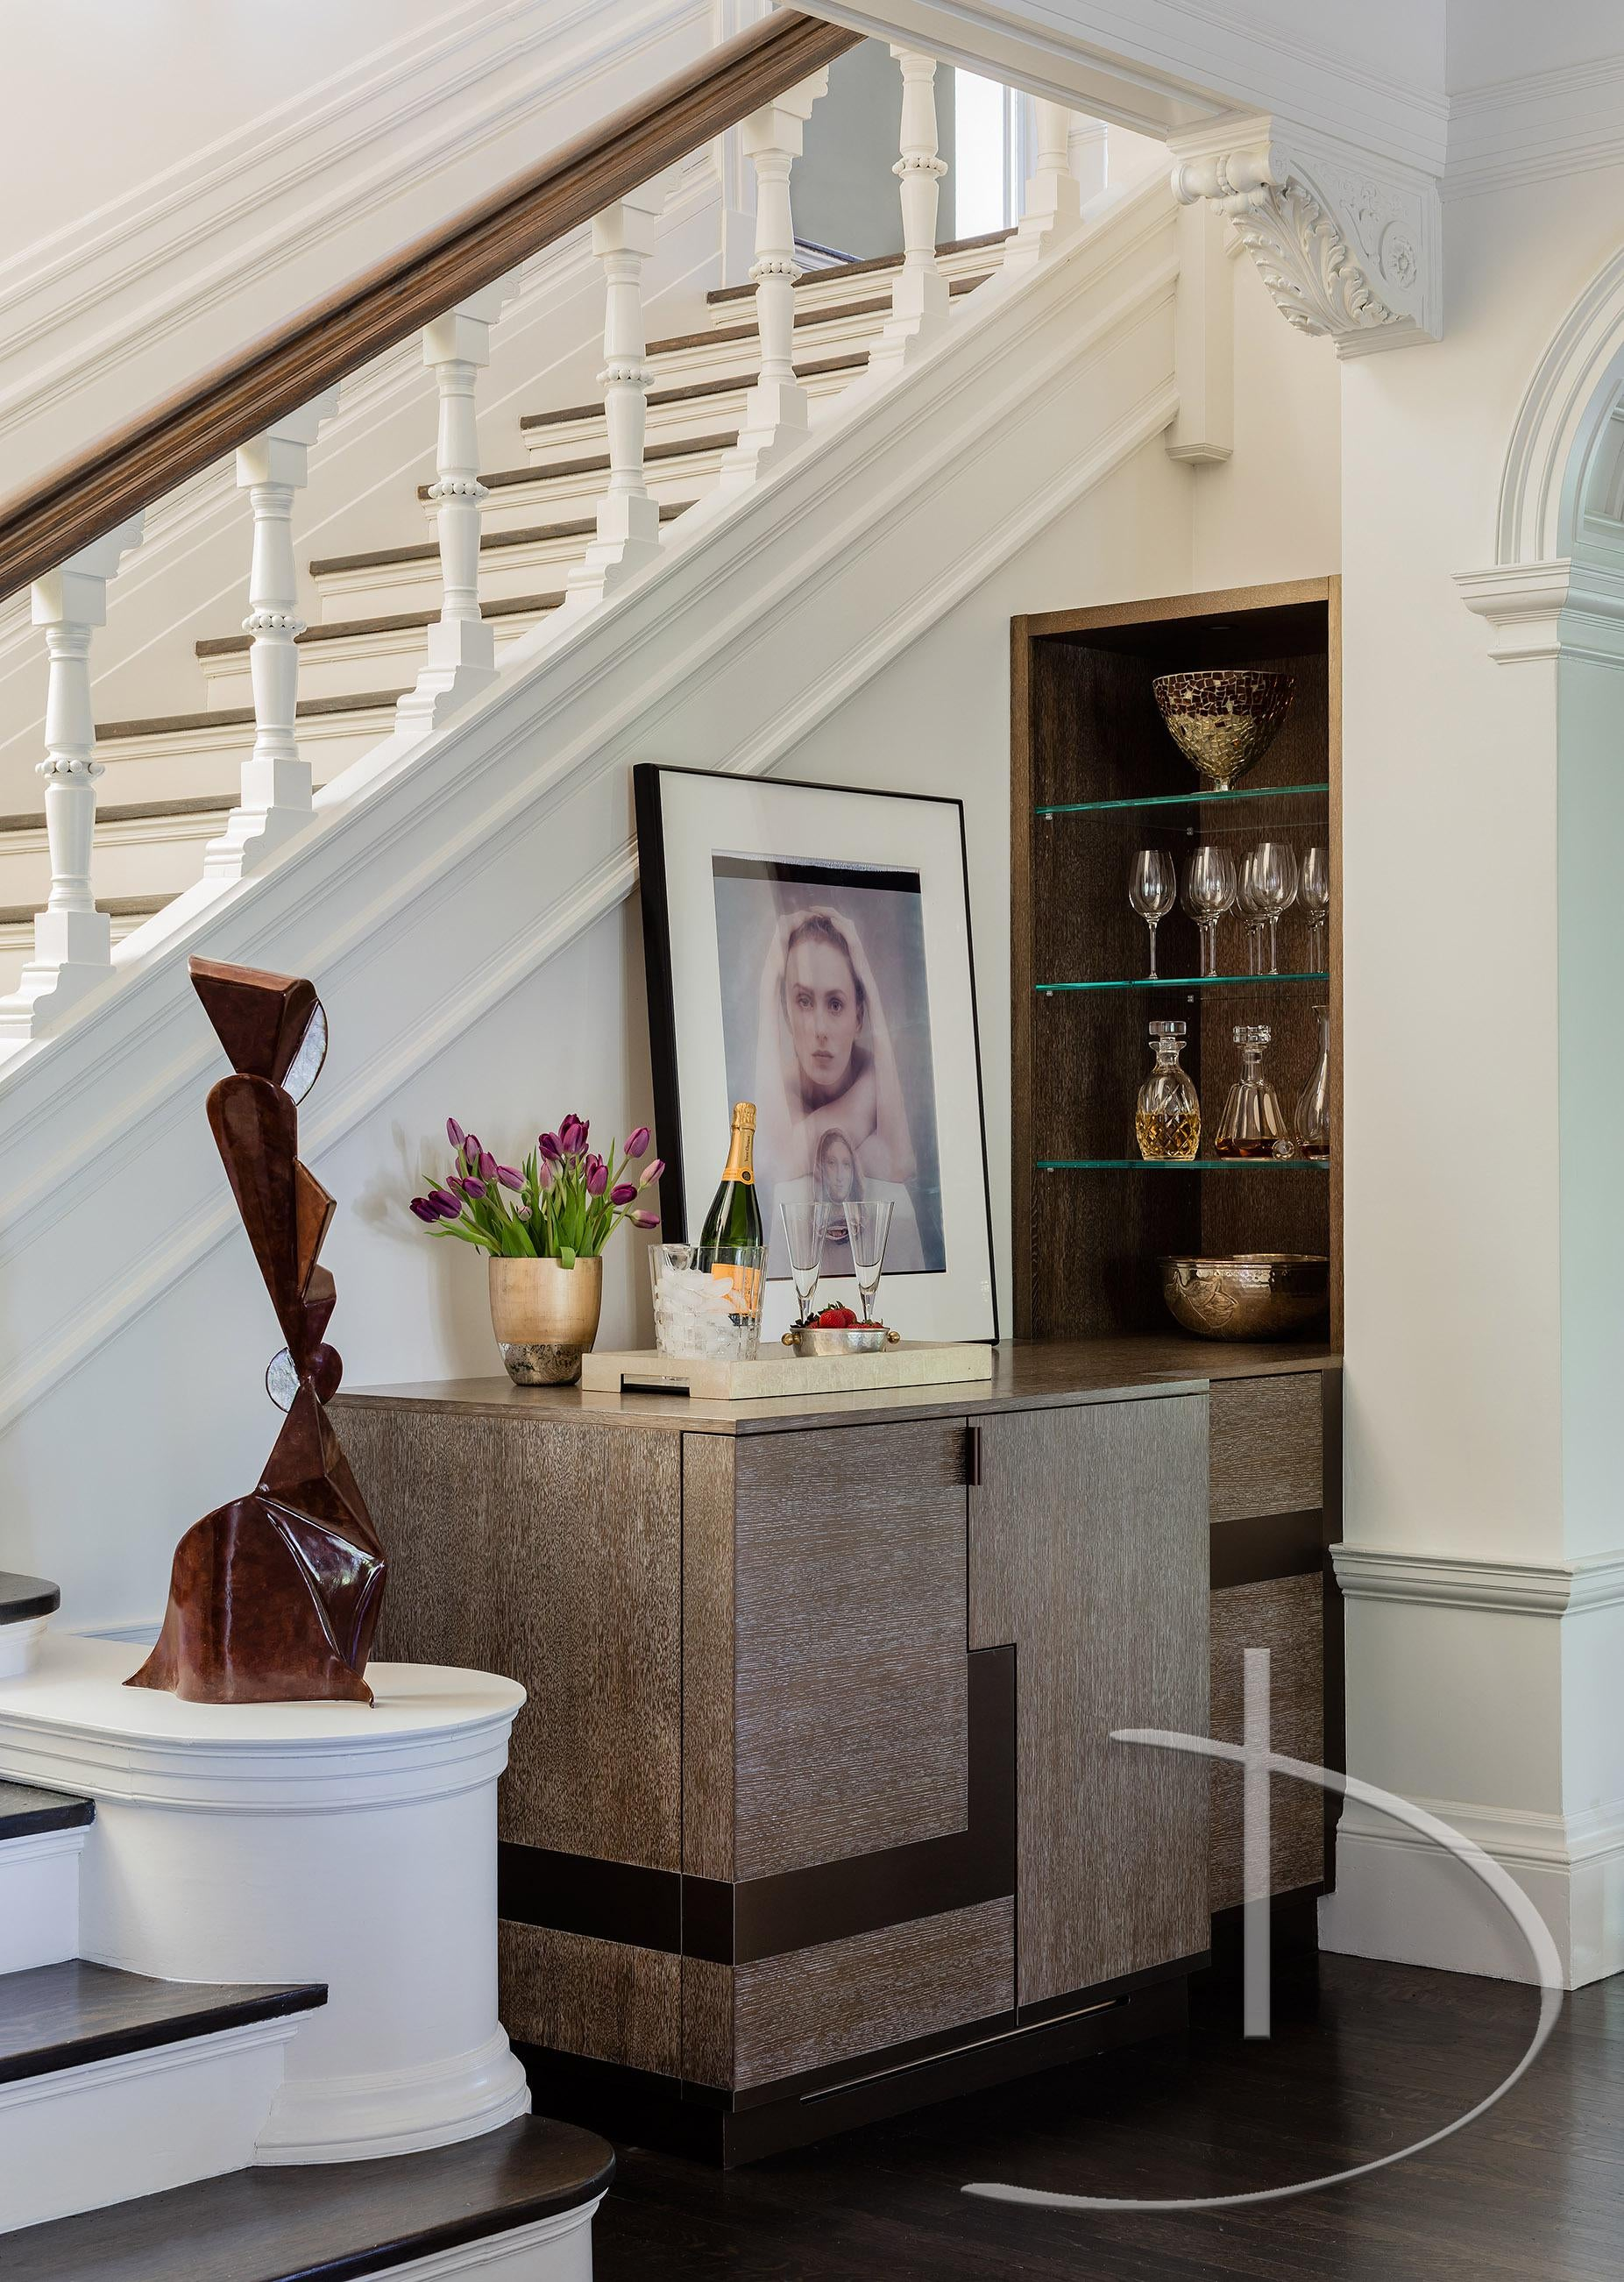 Ordinaire Bold Luxury Boston, MA Foyer Staircase Contemporary Transitional By Daher  Interior Design